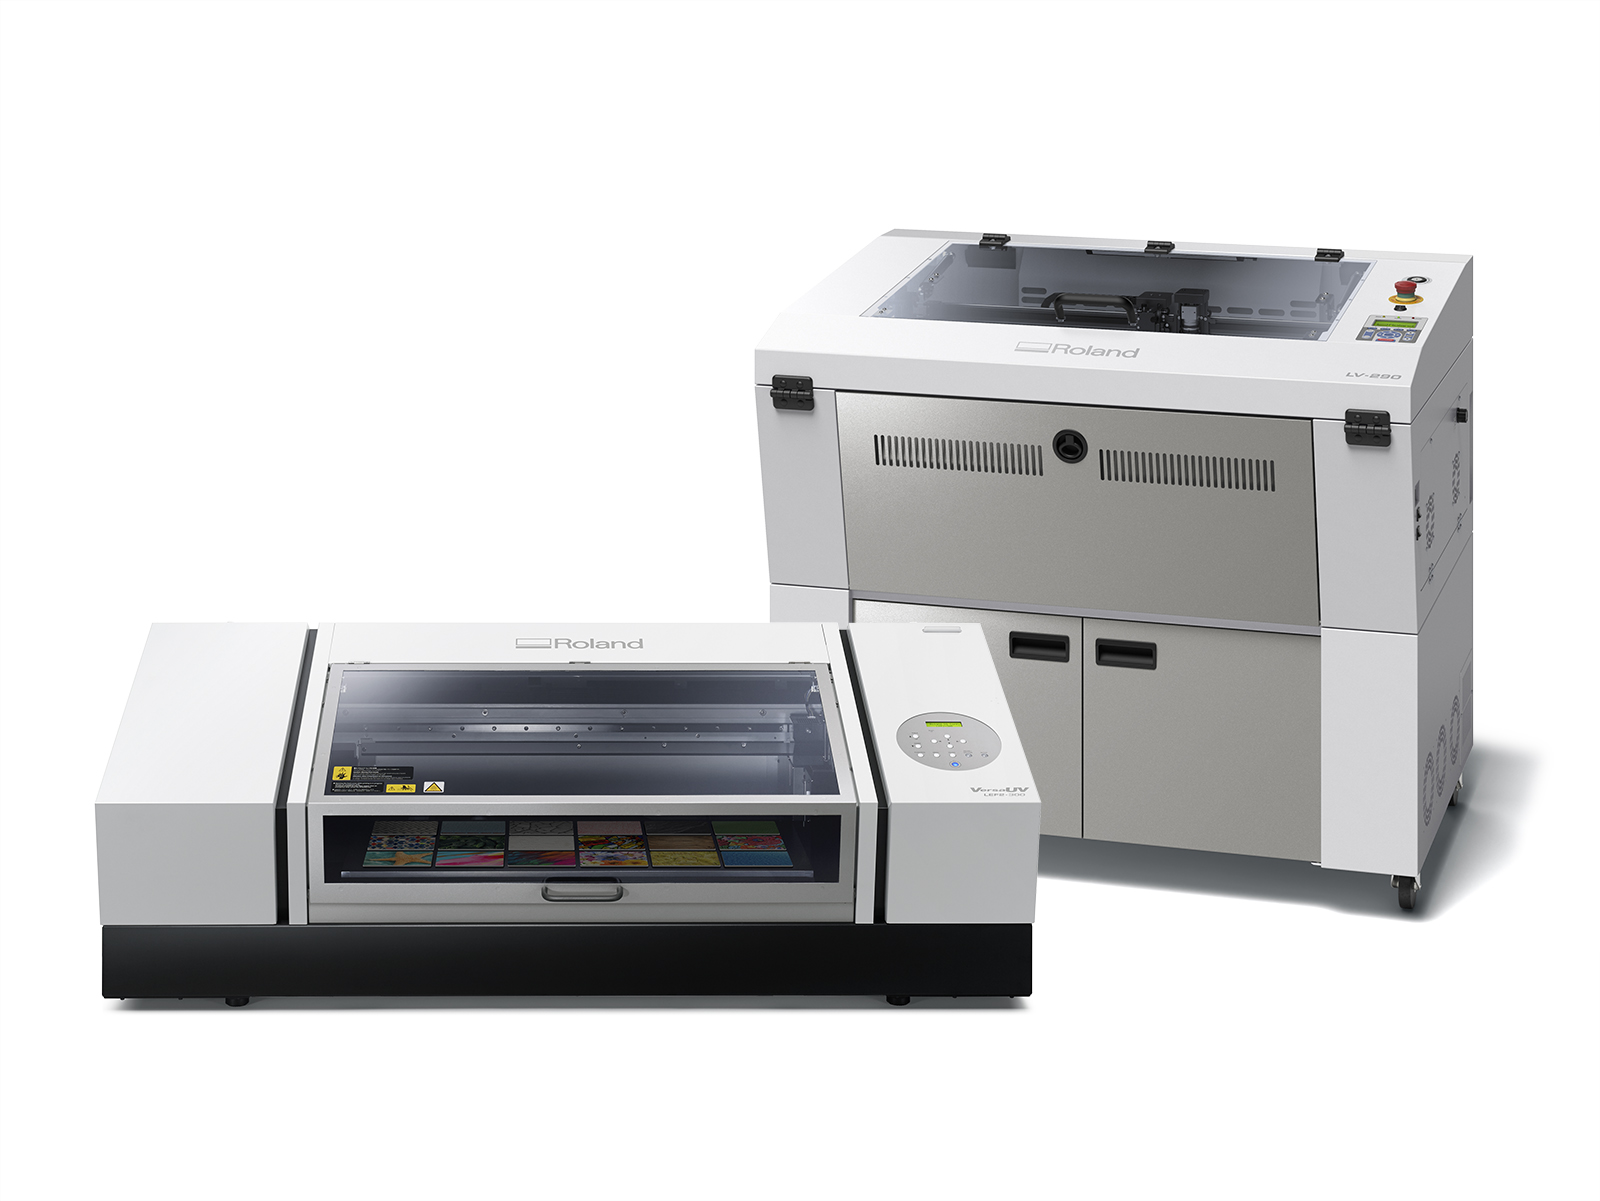 : Roland VersaUV LEF2-300 UV-LED flatbed printer and LV-290 Laser Engraver